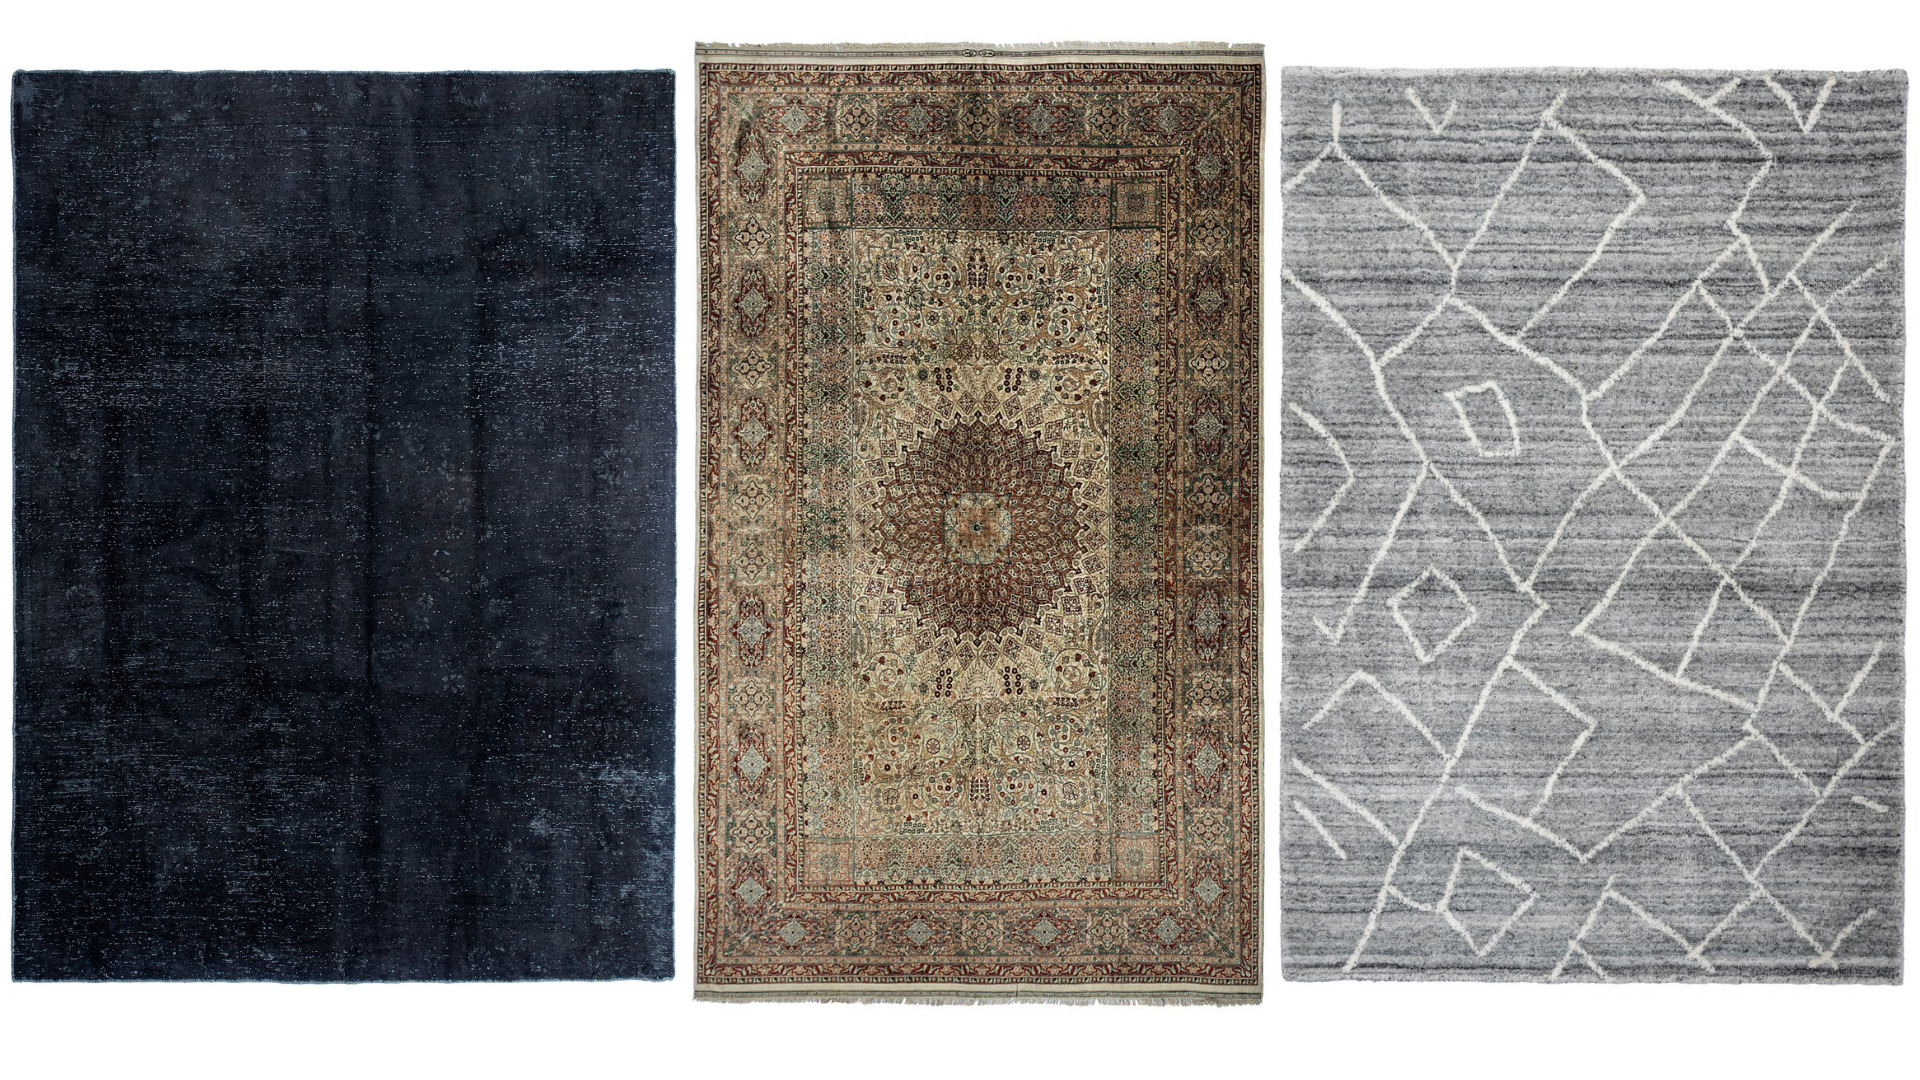 Persian rugs, oriental rugs, home decor, home accessories, decor trends, what's your design style, interior designers, london rugs, rug collections